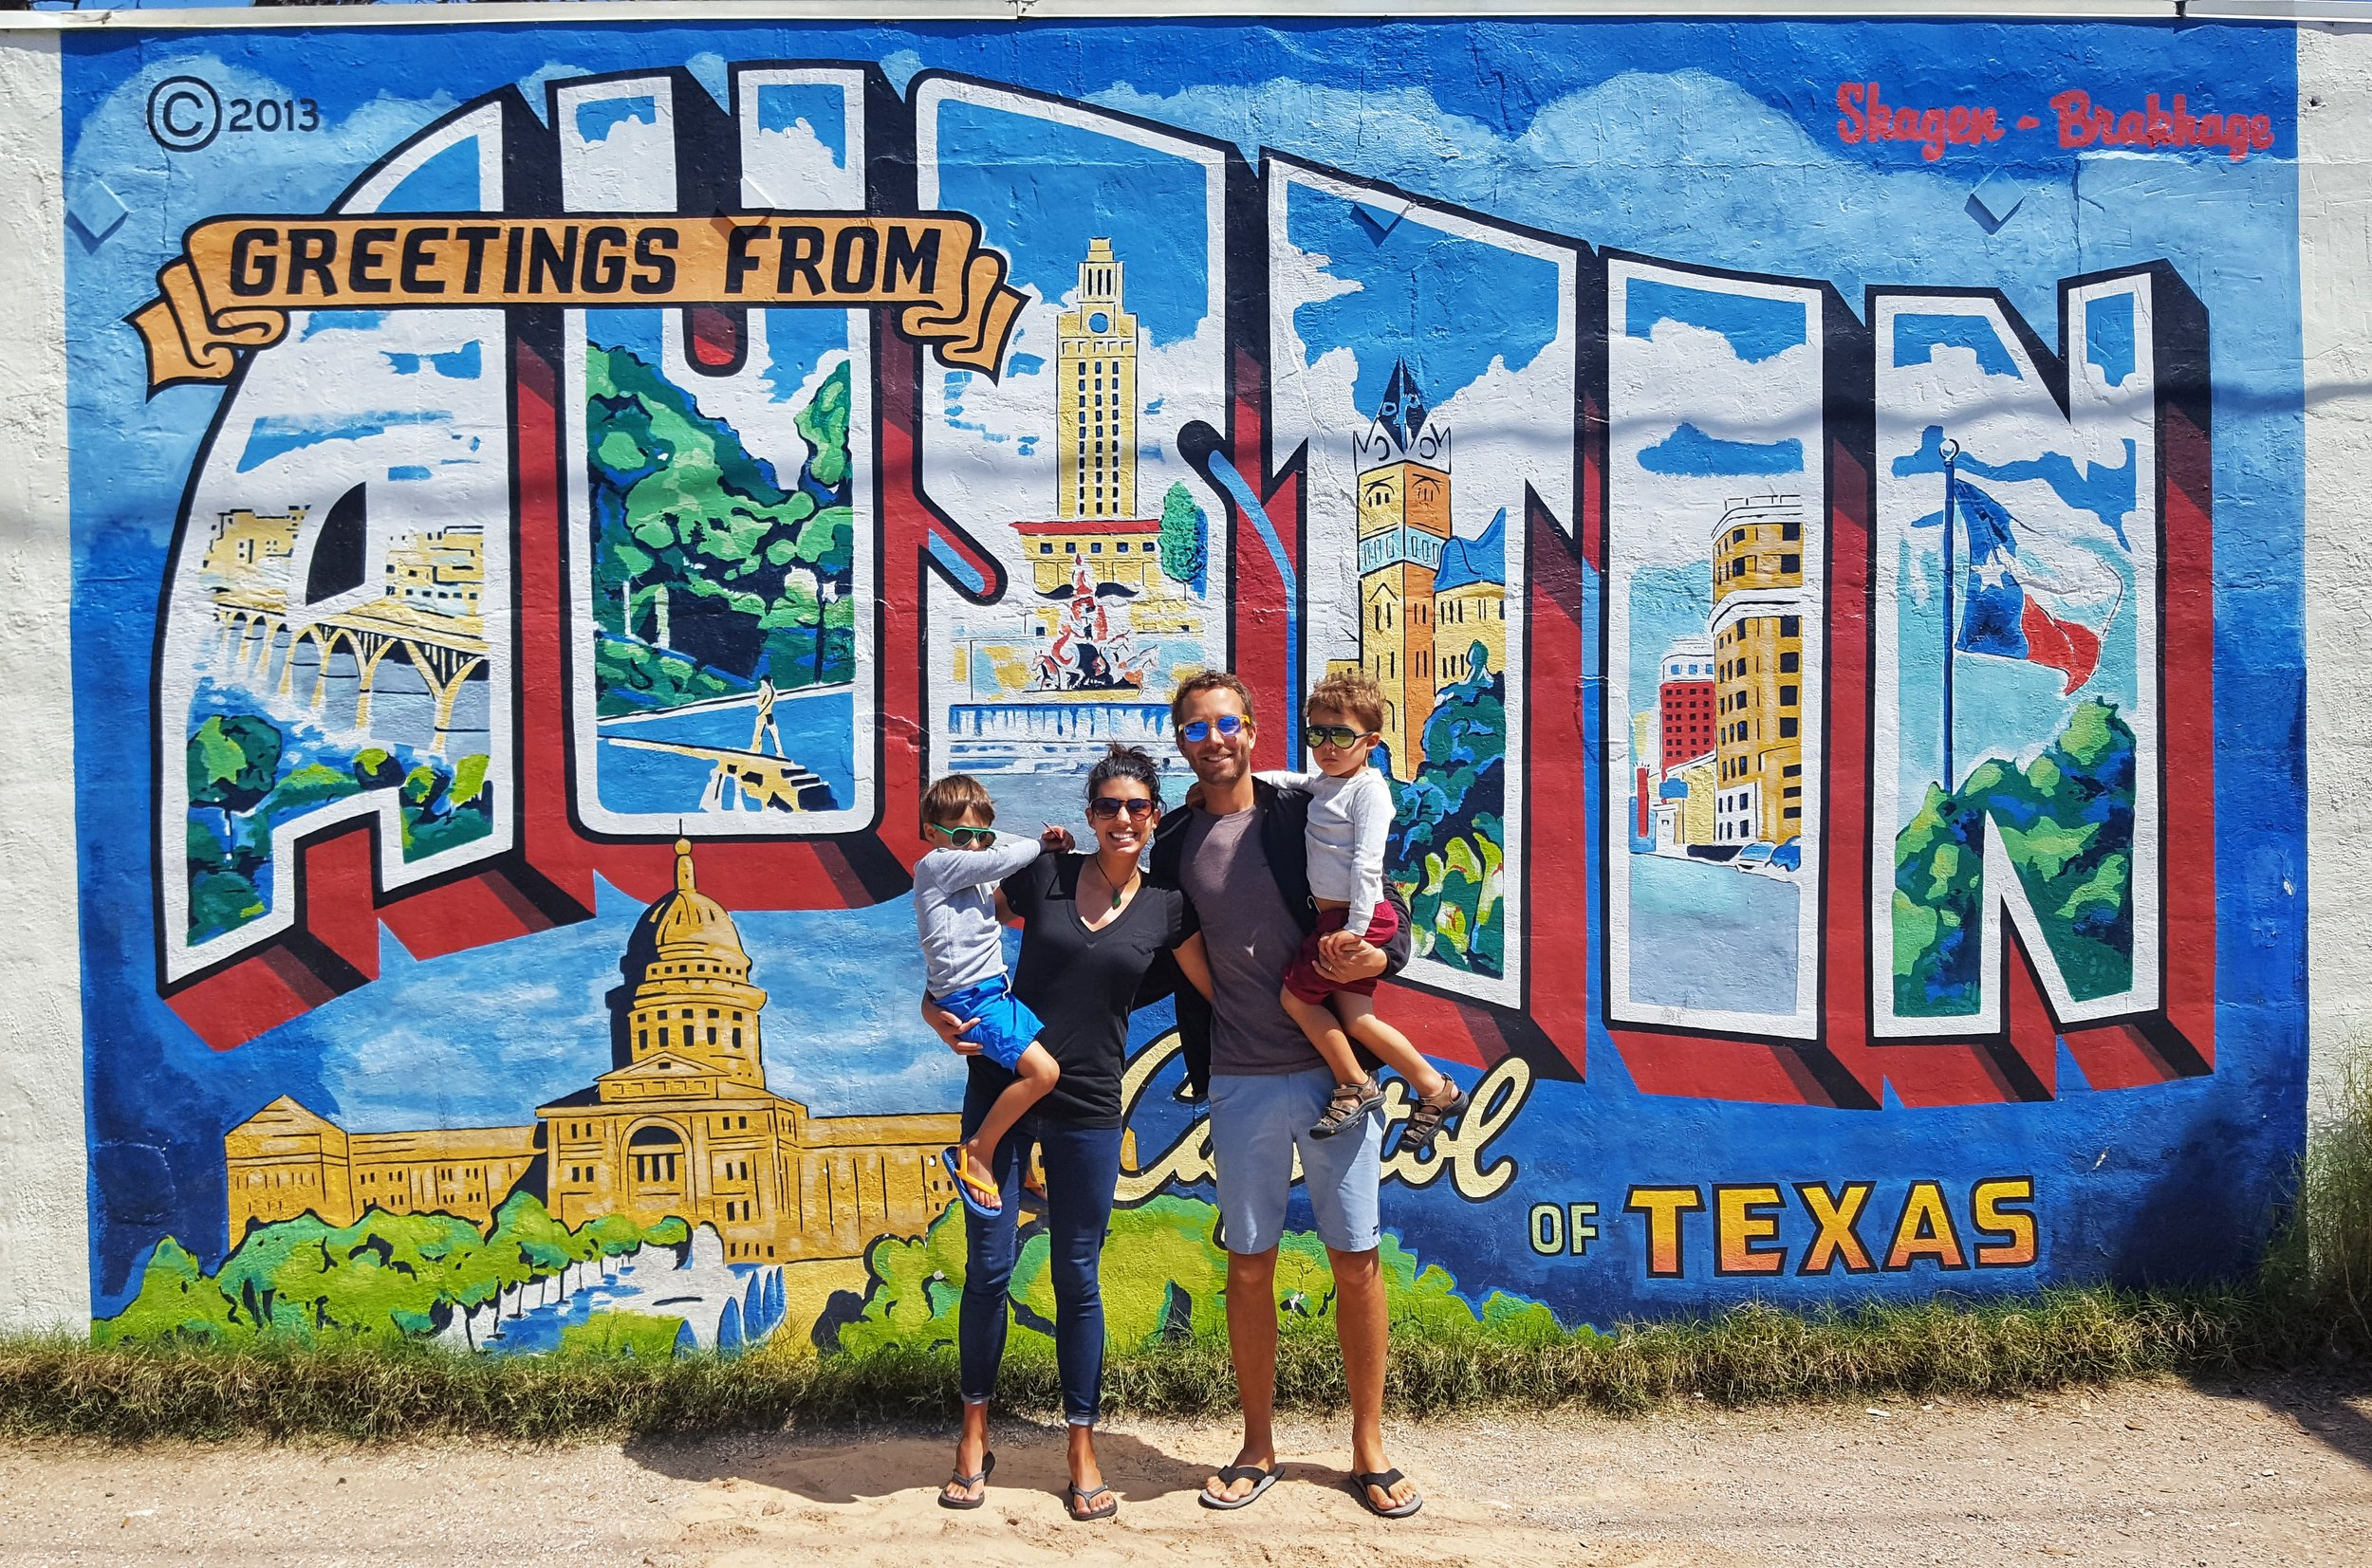 Being tourists at the Greetings From Austin mural!